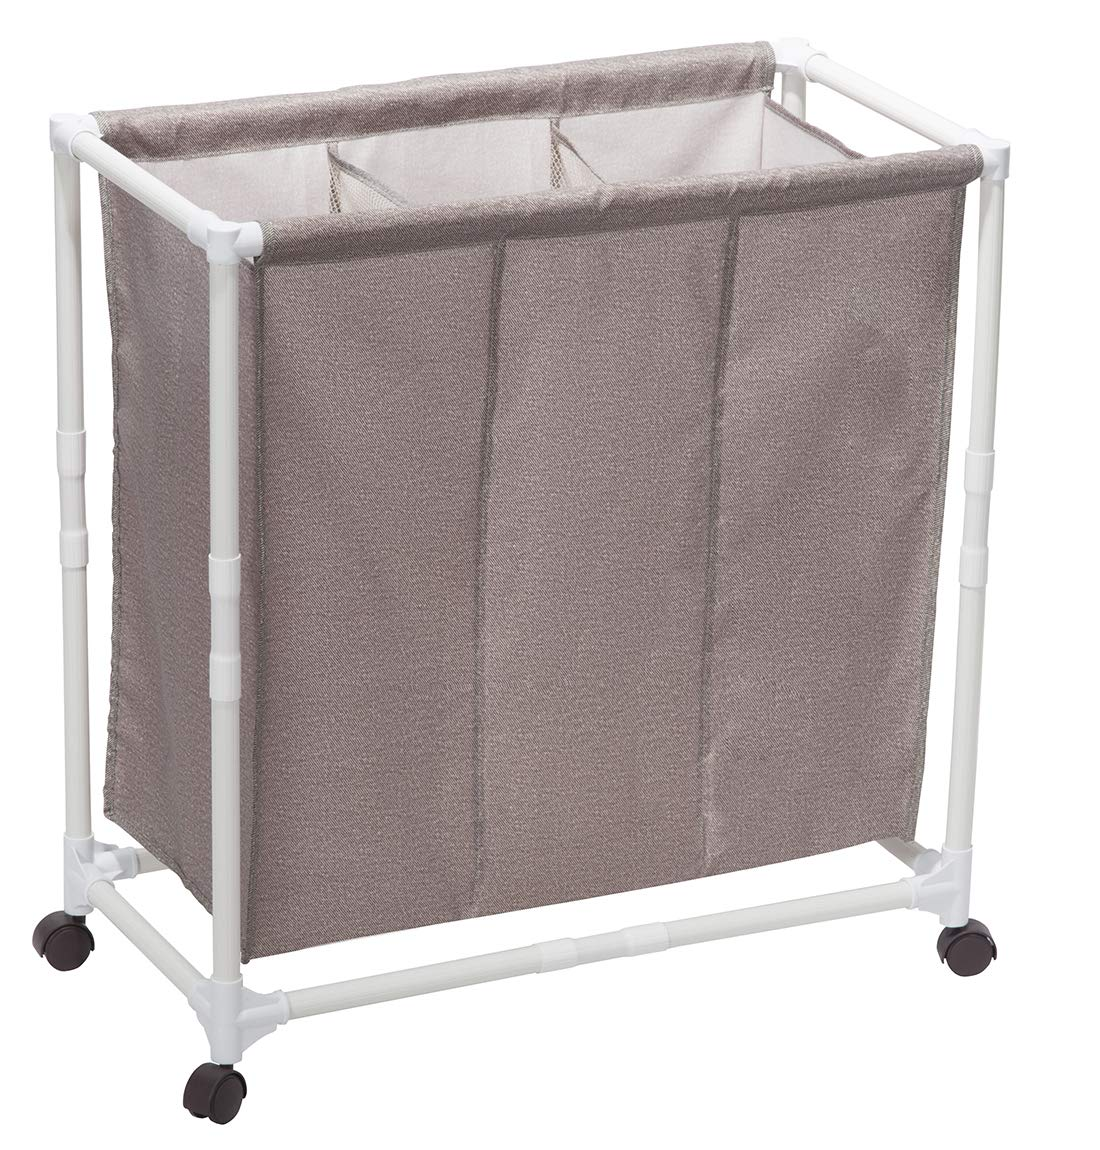 STORAGE MANIAC 3-Section Rolling Laundry Sorter Hamper with Lockable Wheels, Poartable Laundry Cart for Dorm/Apartment, Coffee STM1005000027